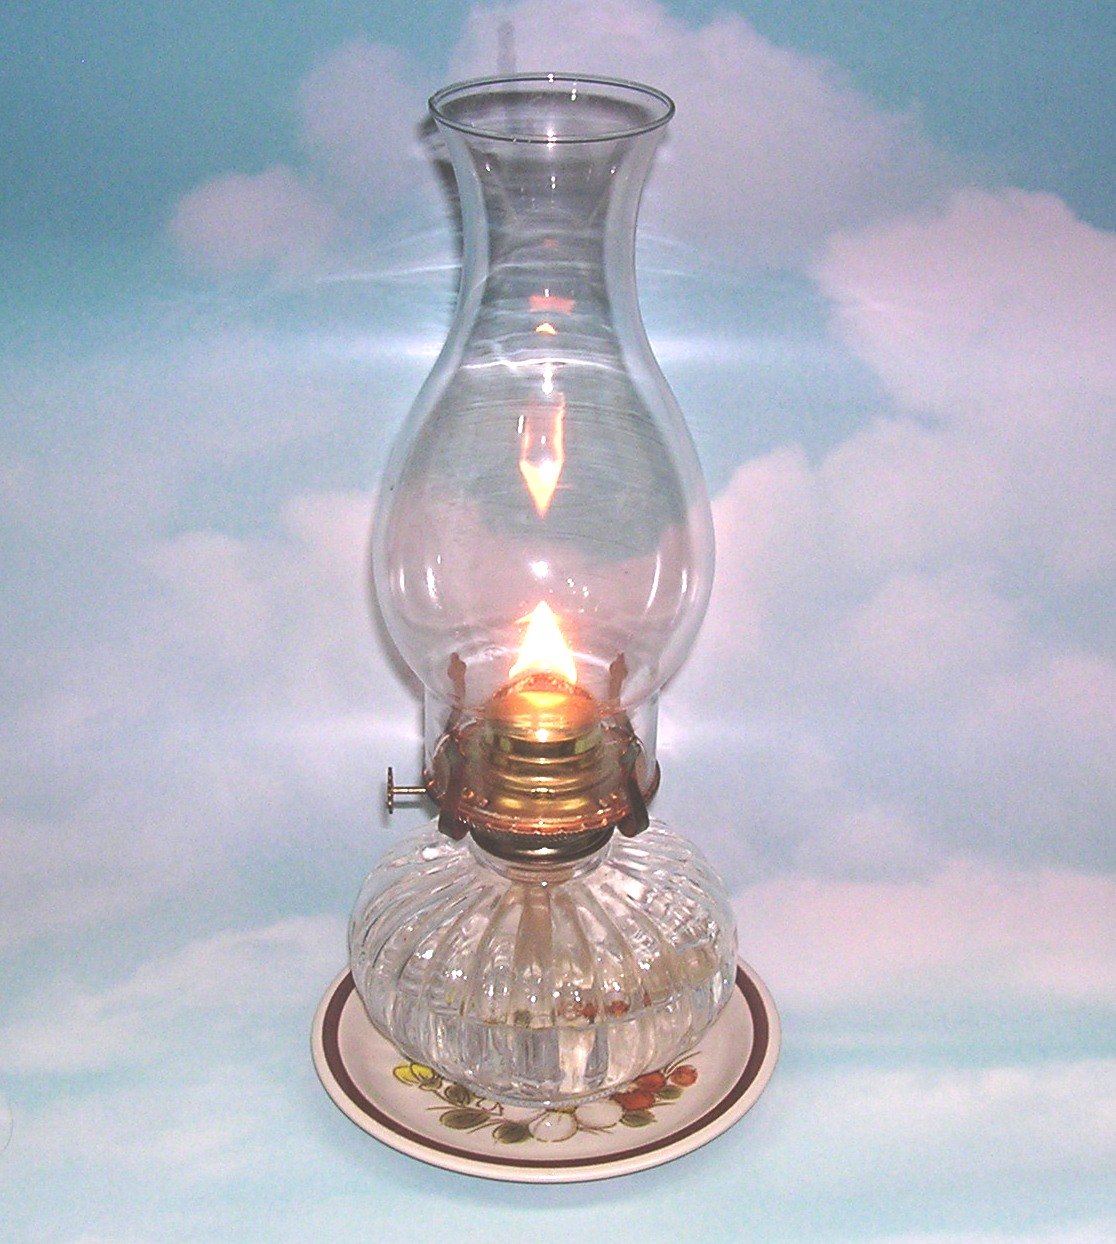 Kerosene Lamps - Bing images